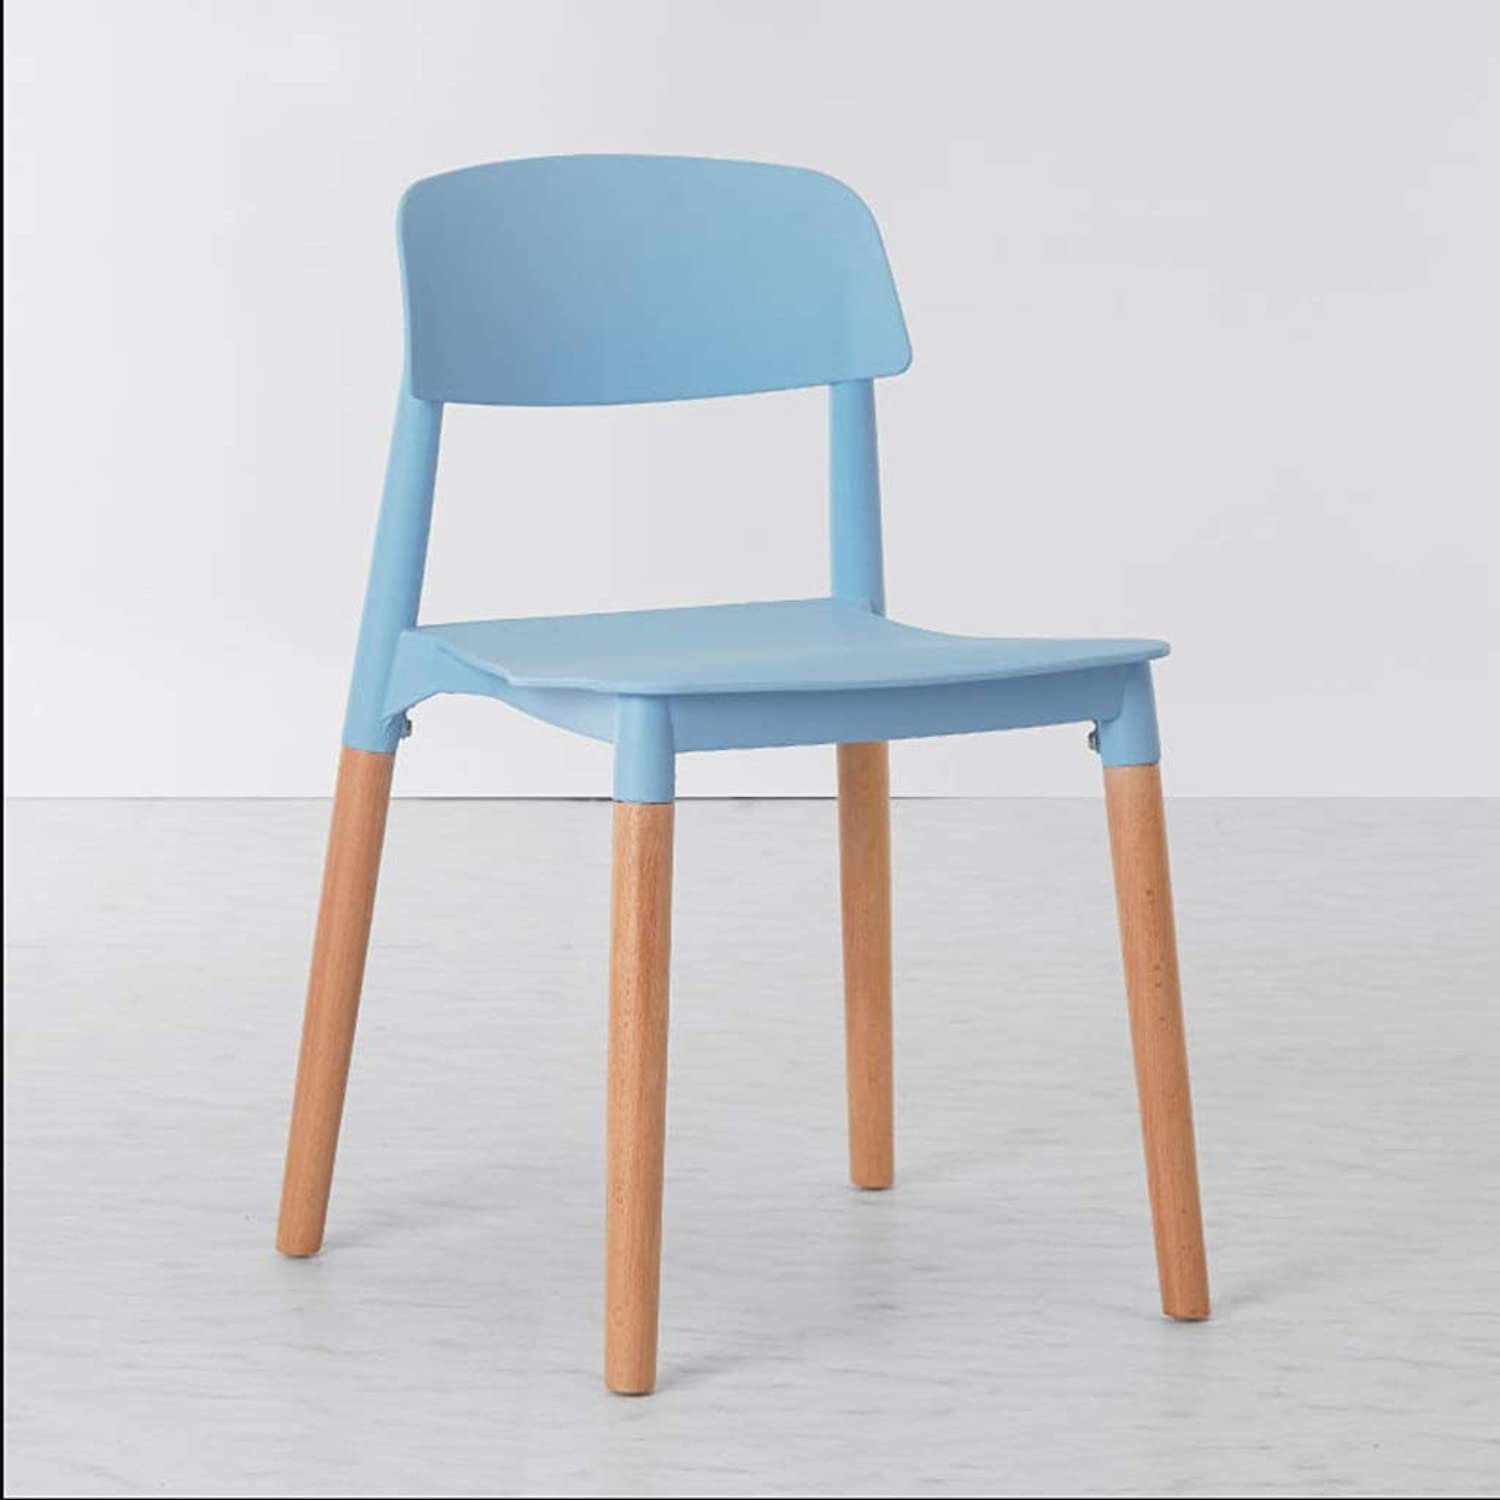 Chair Family Dining Chair Now Adult with Backrest Plastic Stool Dressing Table Makeup Chair Office Chair (color   bluee, Size   45  47  75cm)